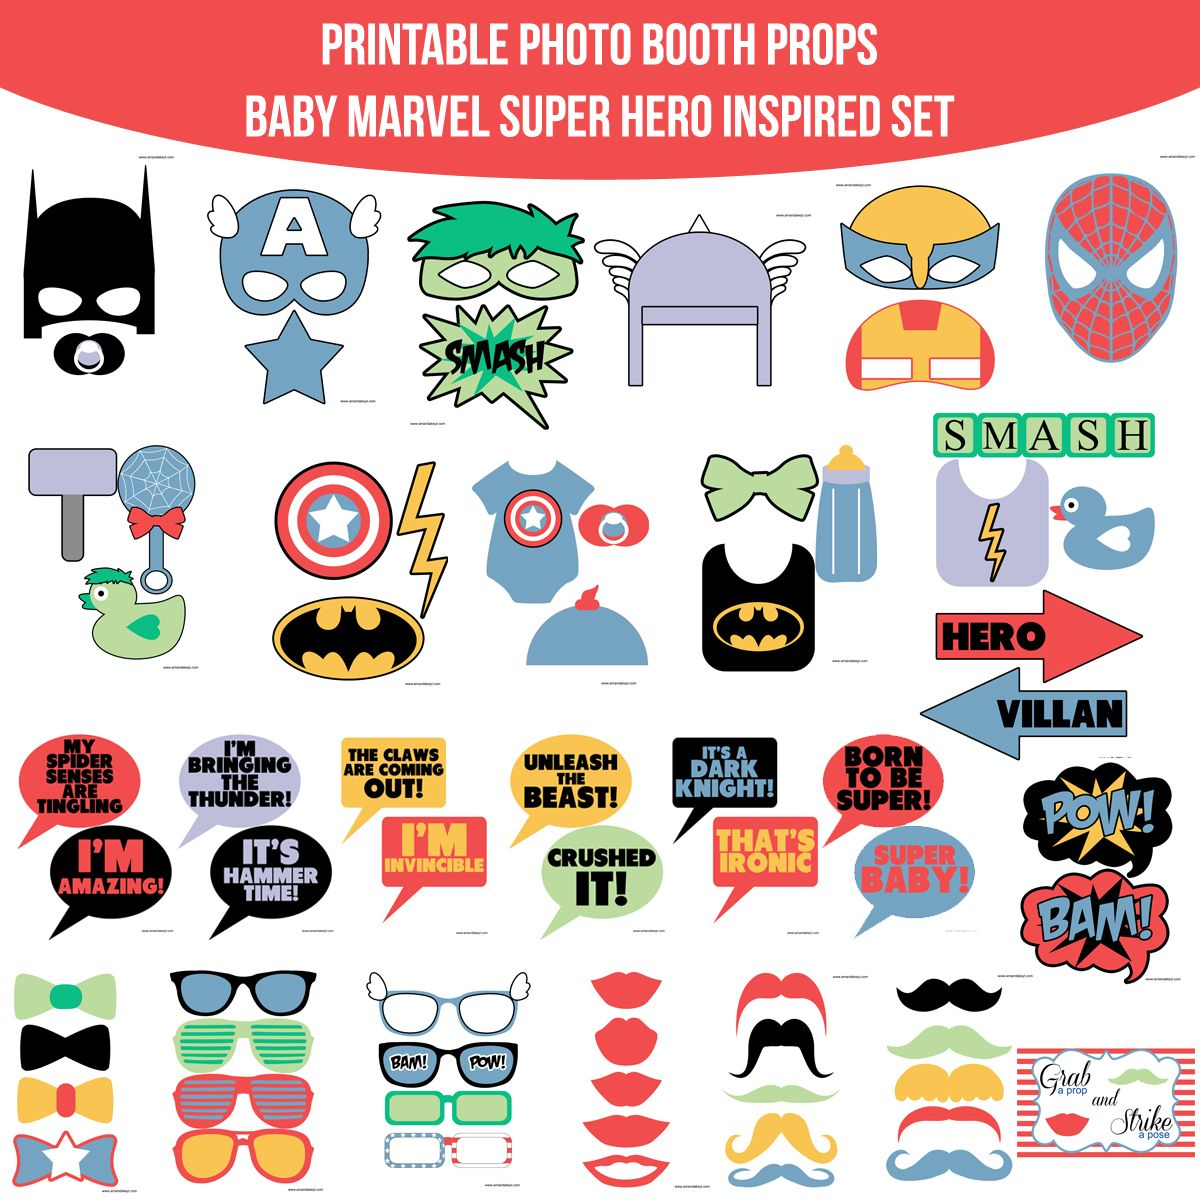 Instant Download Muted Baby Marvel Super Hero Inspired Printable Photo Booth Prop Set — Amanda Keyt DIY Photo Booth Props & More!